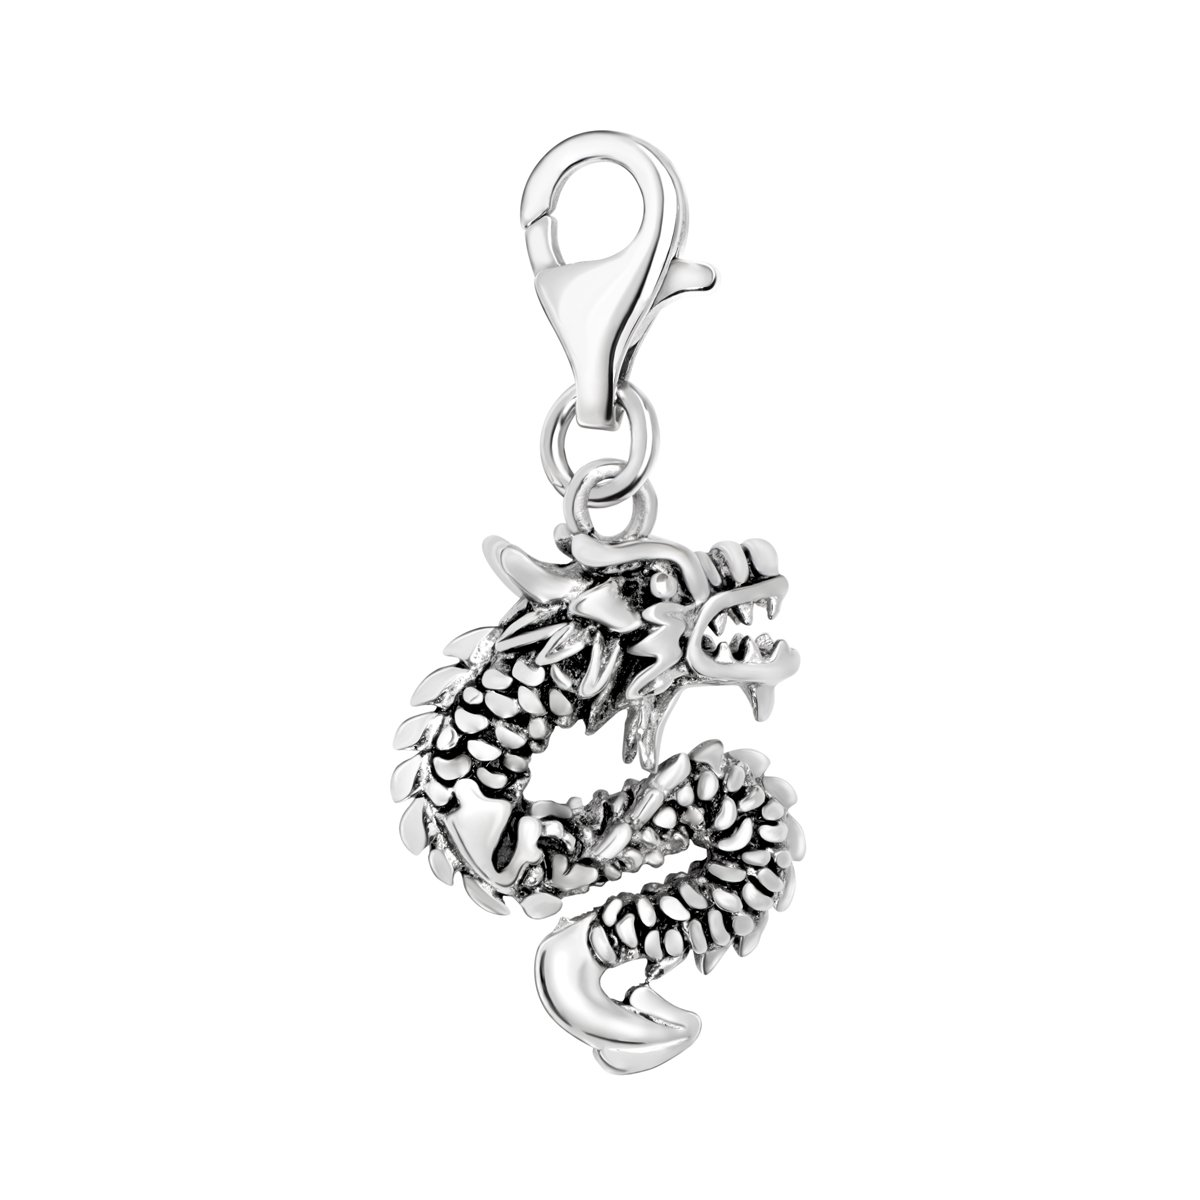 Quiges 925 Sterling Silver 3D Dragon Clip On Lobster Clasp Charm Pendant